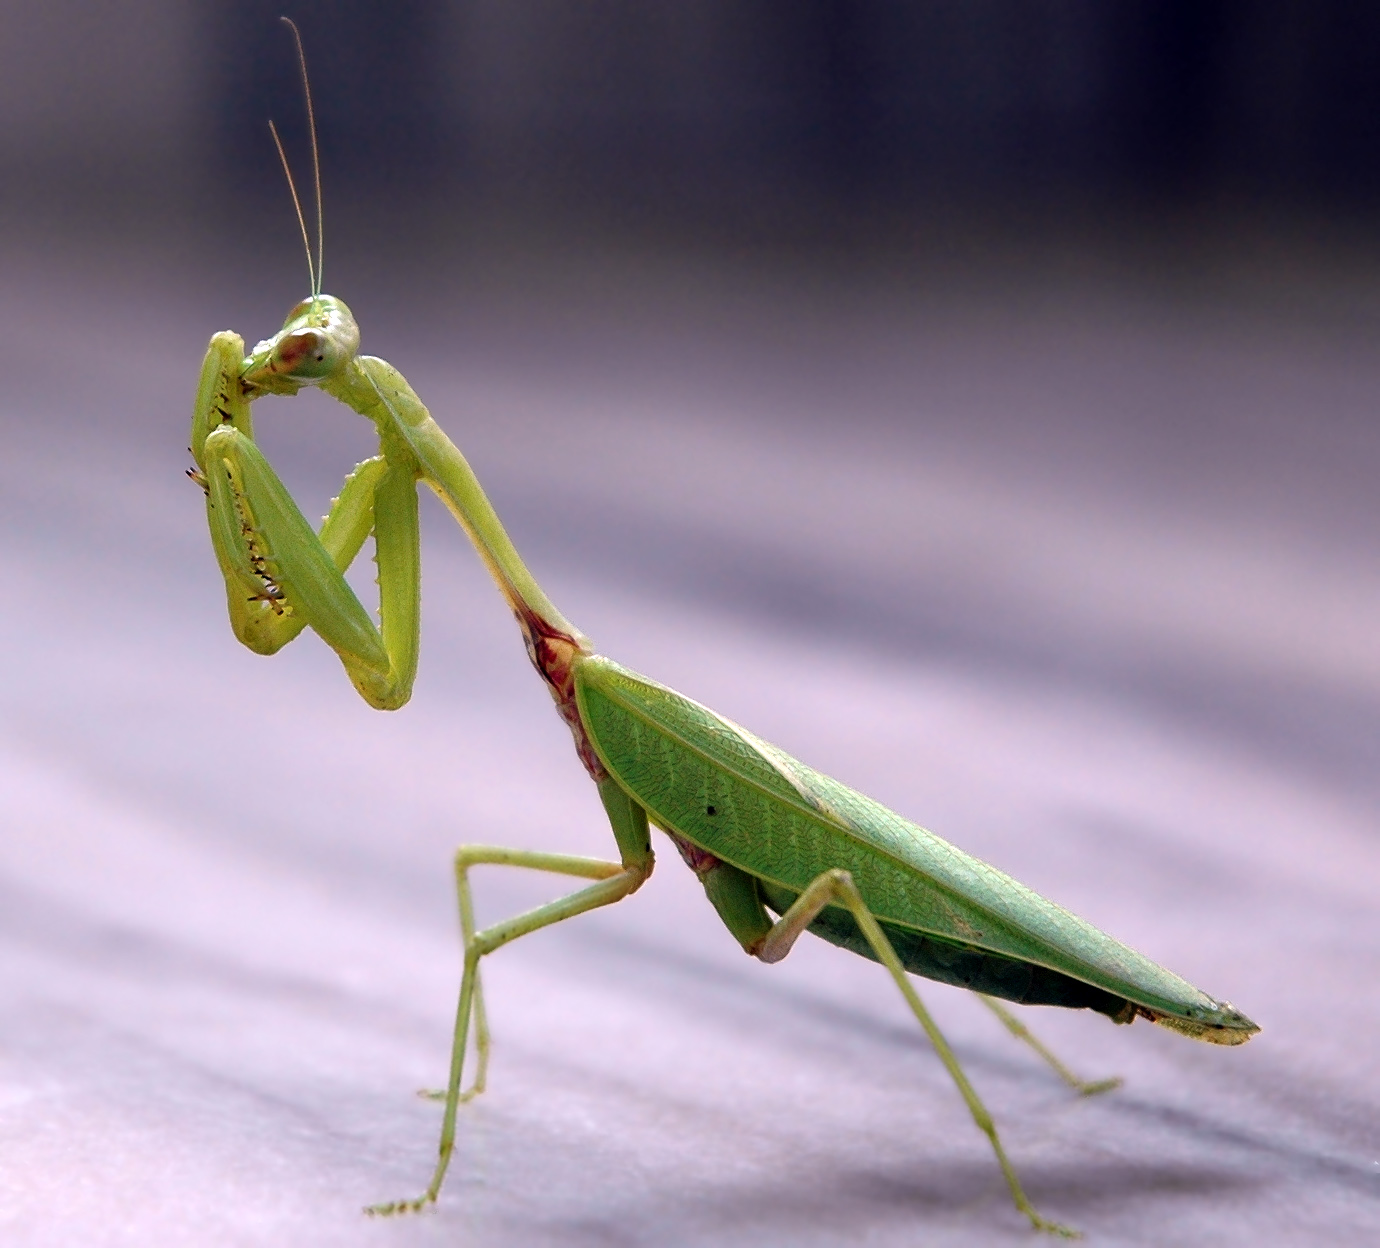 http://upload.wikimedia.org/wikipedia/commons/2/22/Praying_mantis_india.jpg